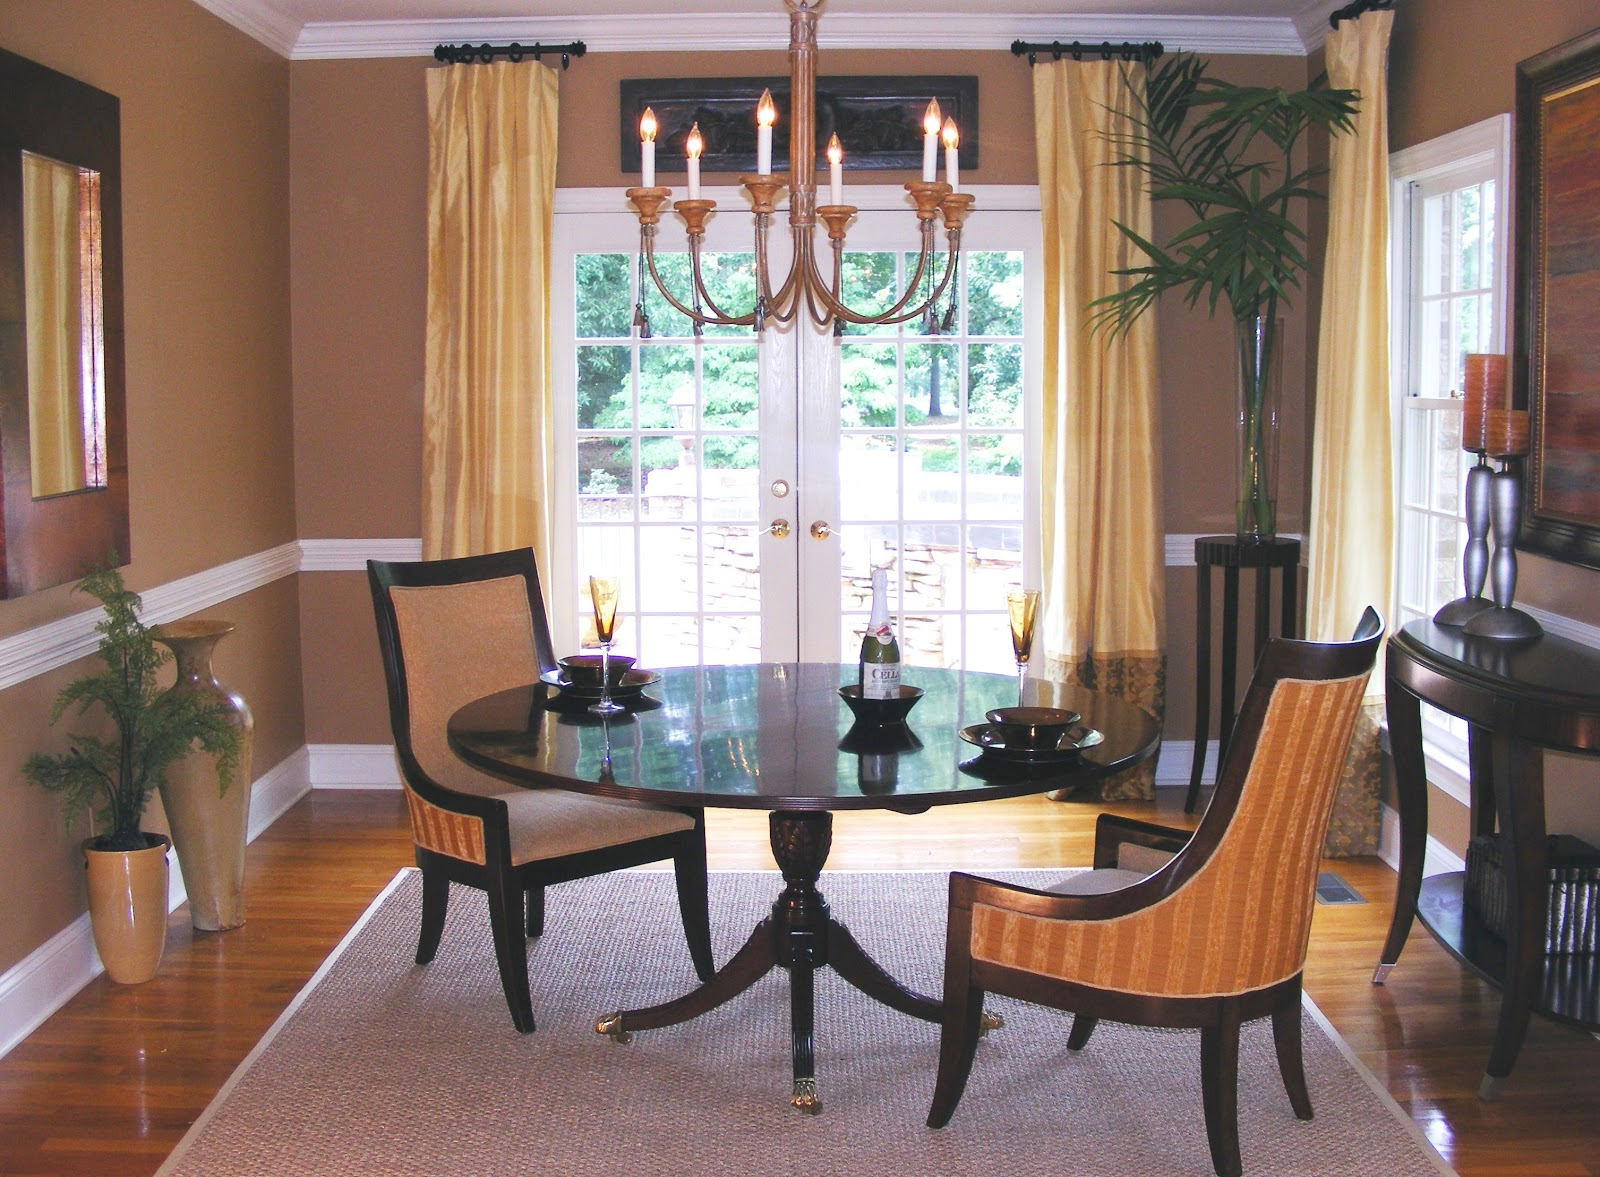 In This Greensboro NC Dining Room The Homeowner Moves 4 Chairs To Living Area When Theyre Not Needed For Formal Allows